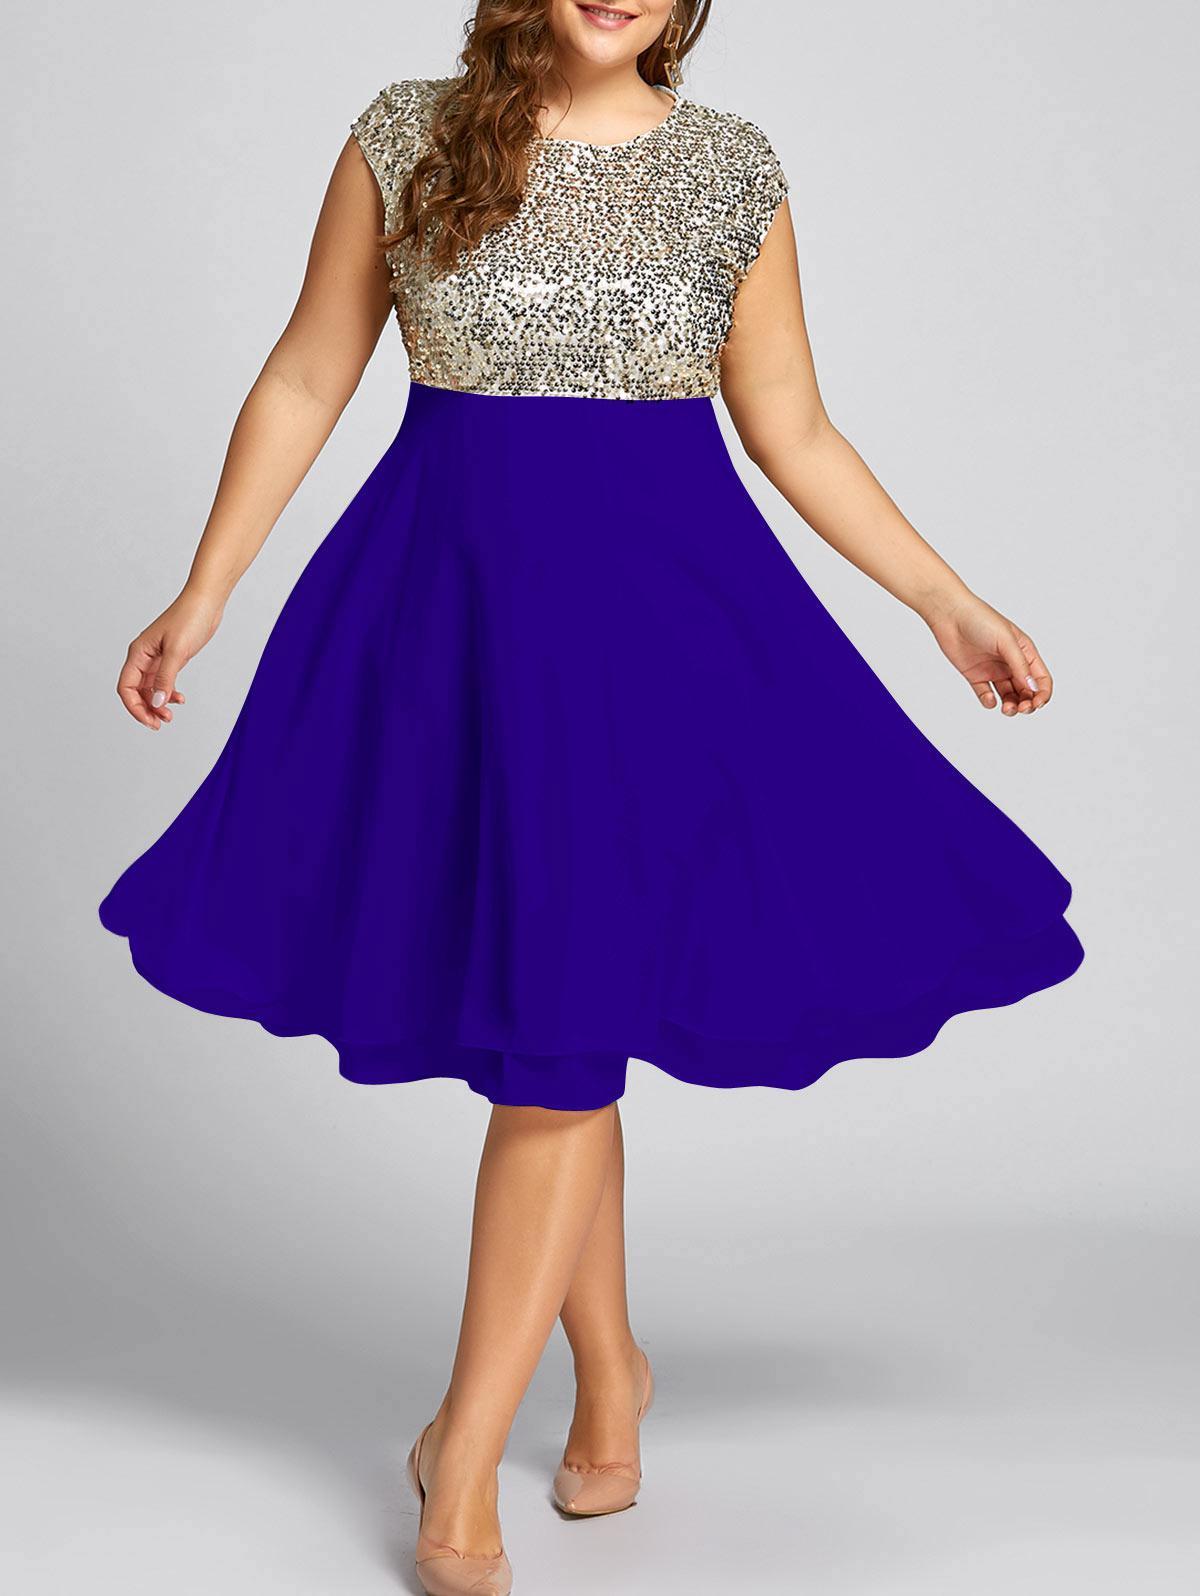 Flounce Plus Size Sequin Sparkly Cocktail Dress 234185920